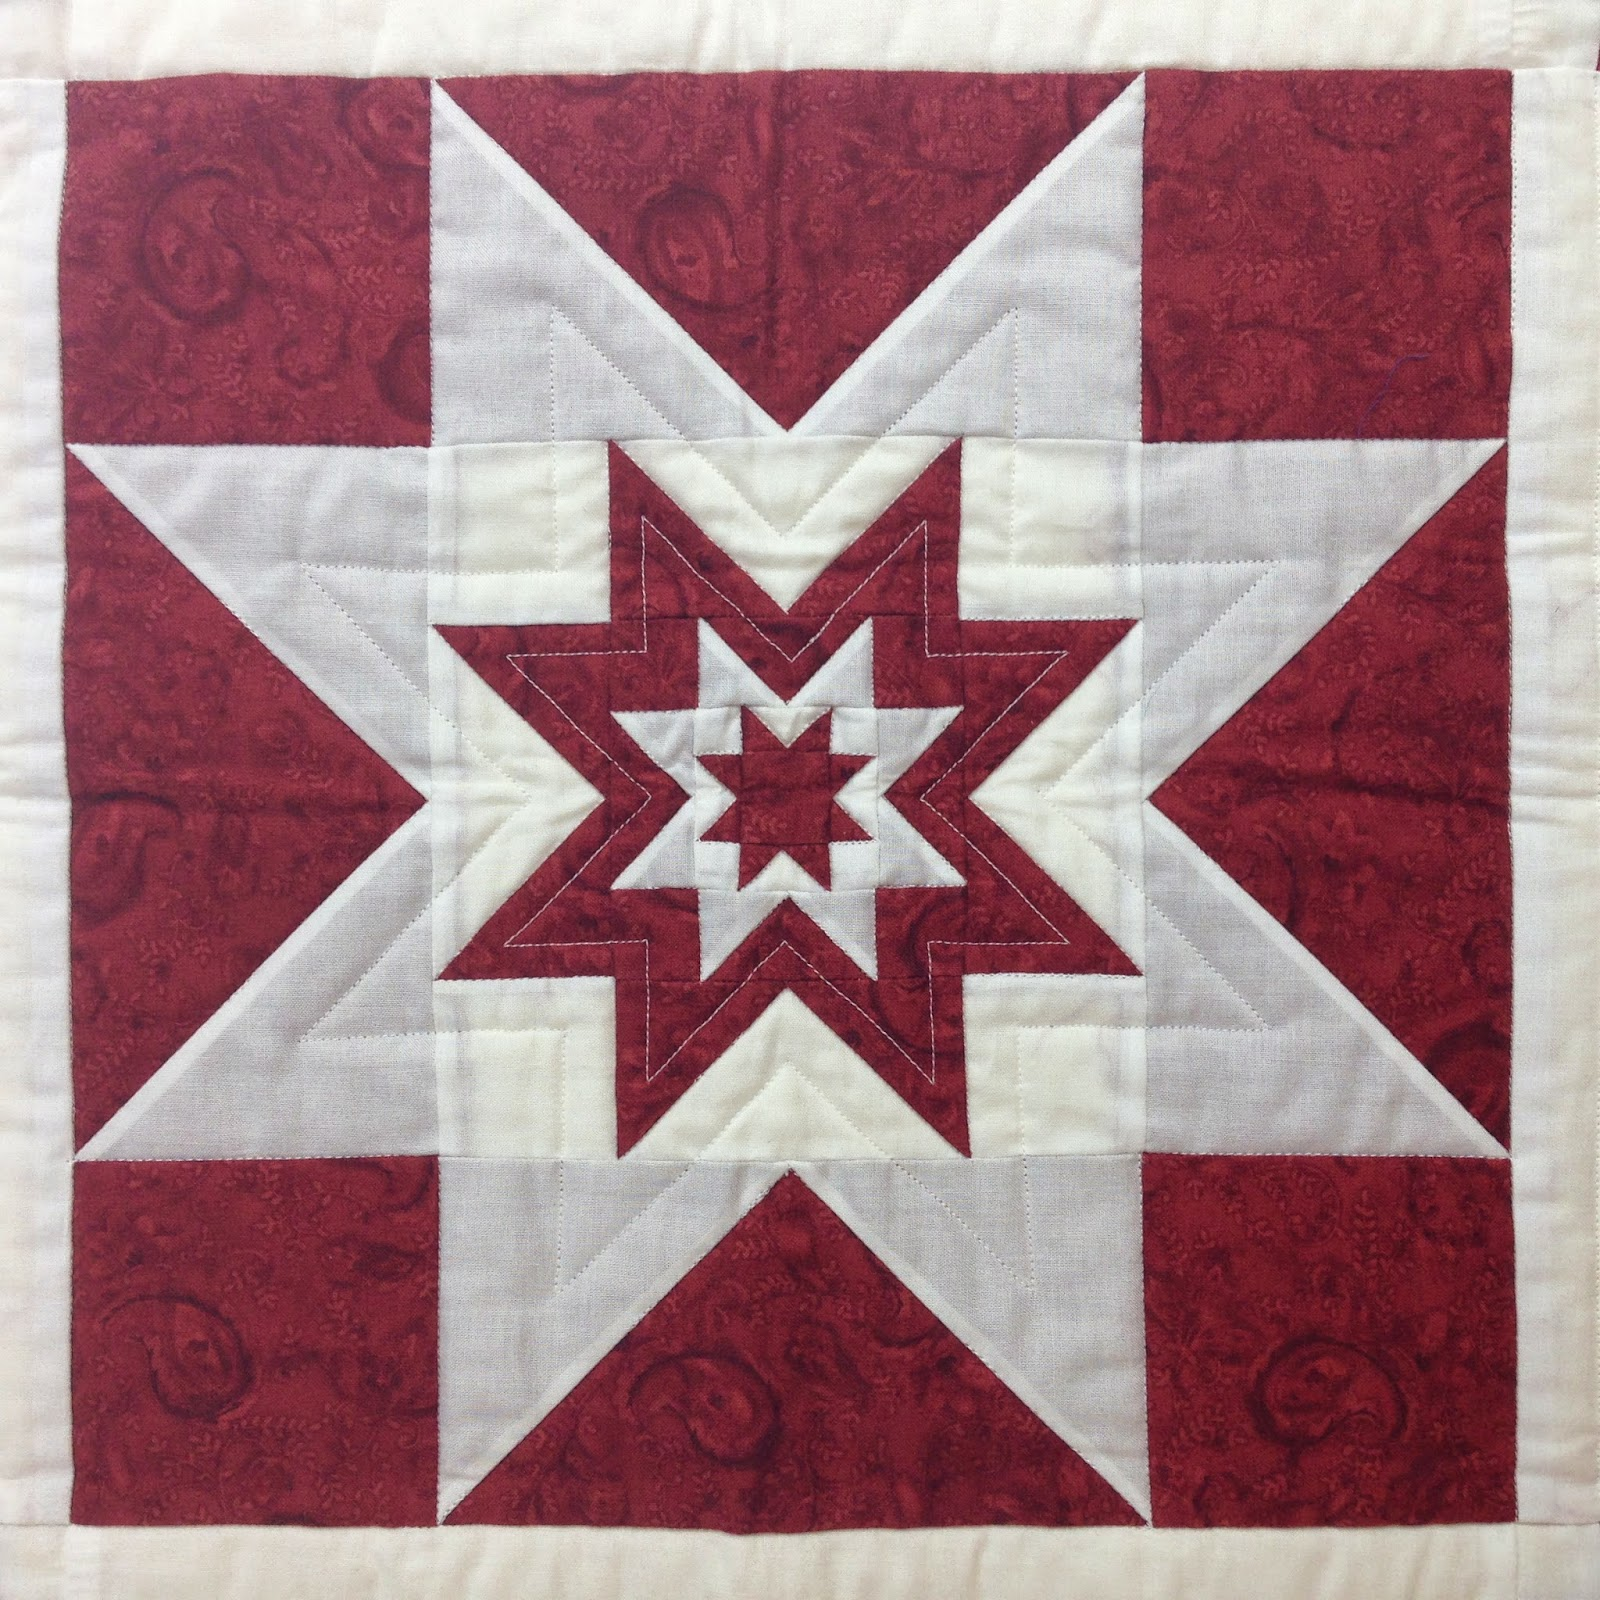 Free Motion Quilting Patterns For Blocks : The Free Motion Quilting Project: 46. How to Piece a Sawtooth Star Block